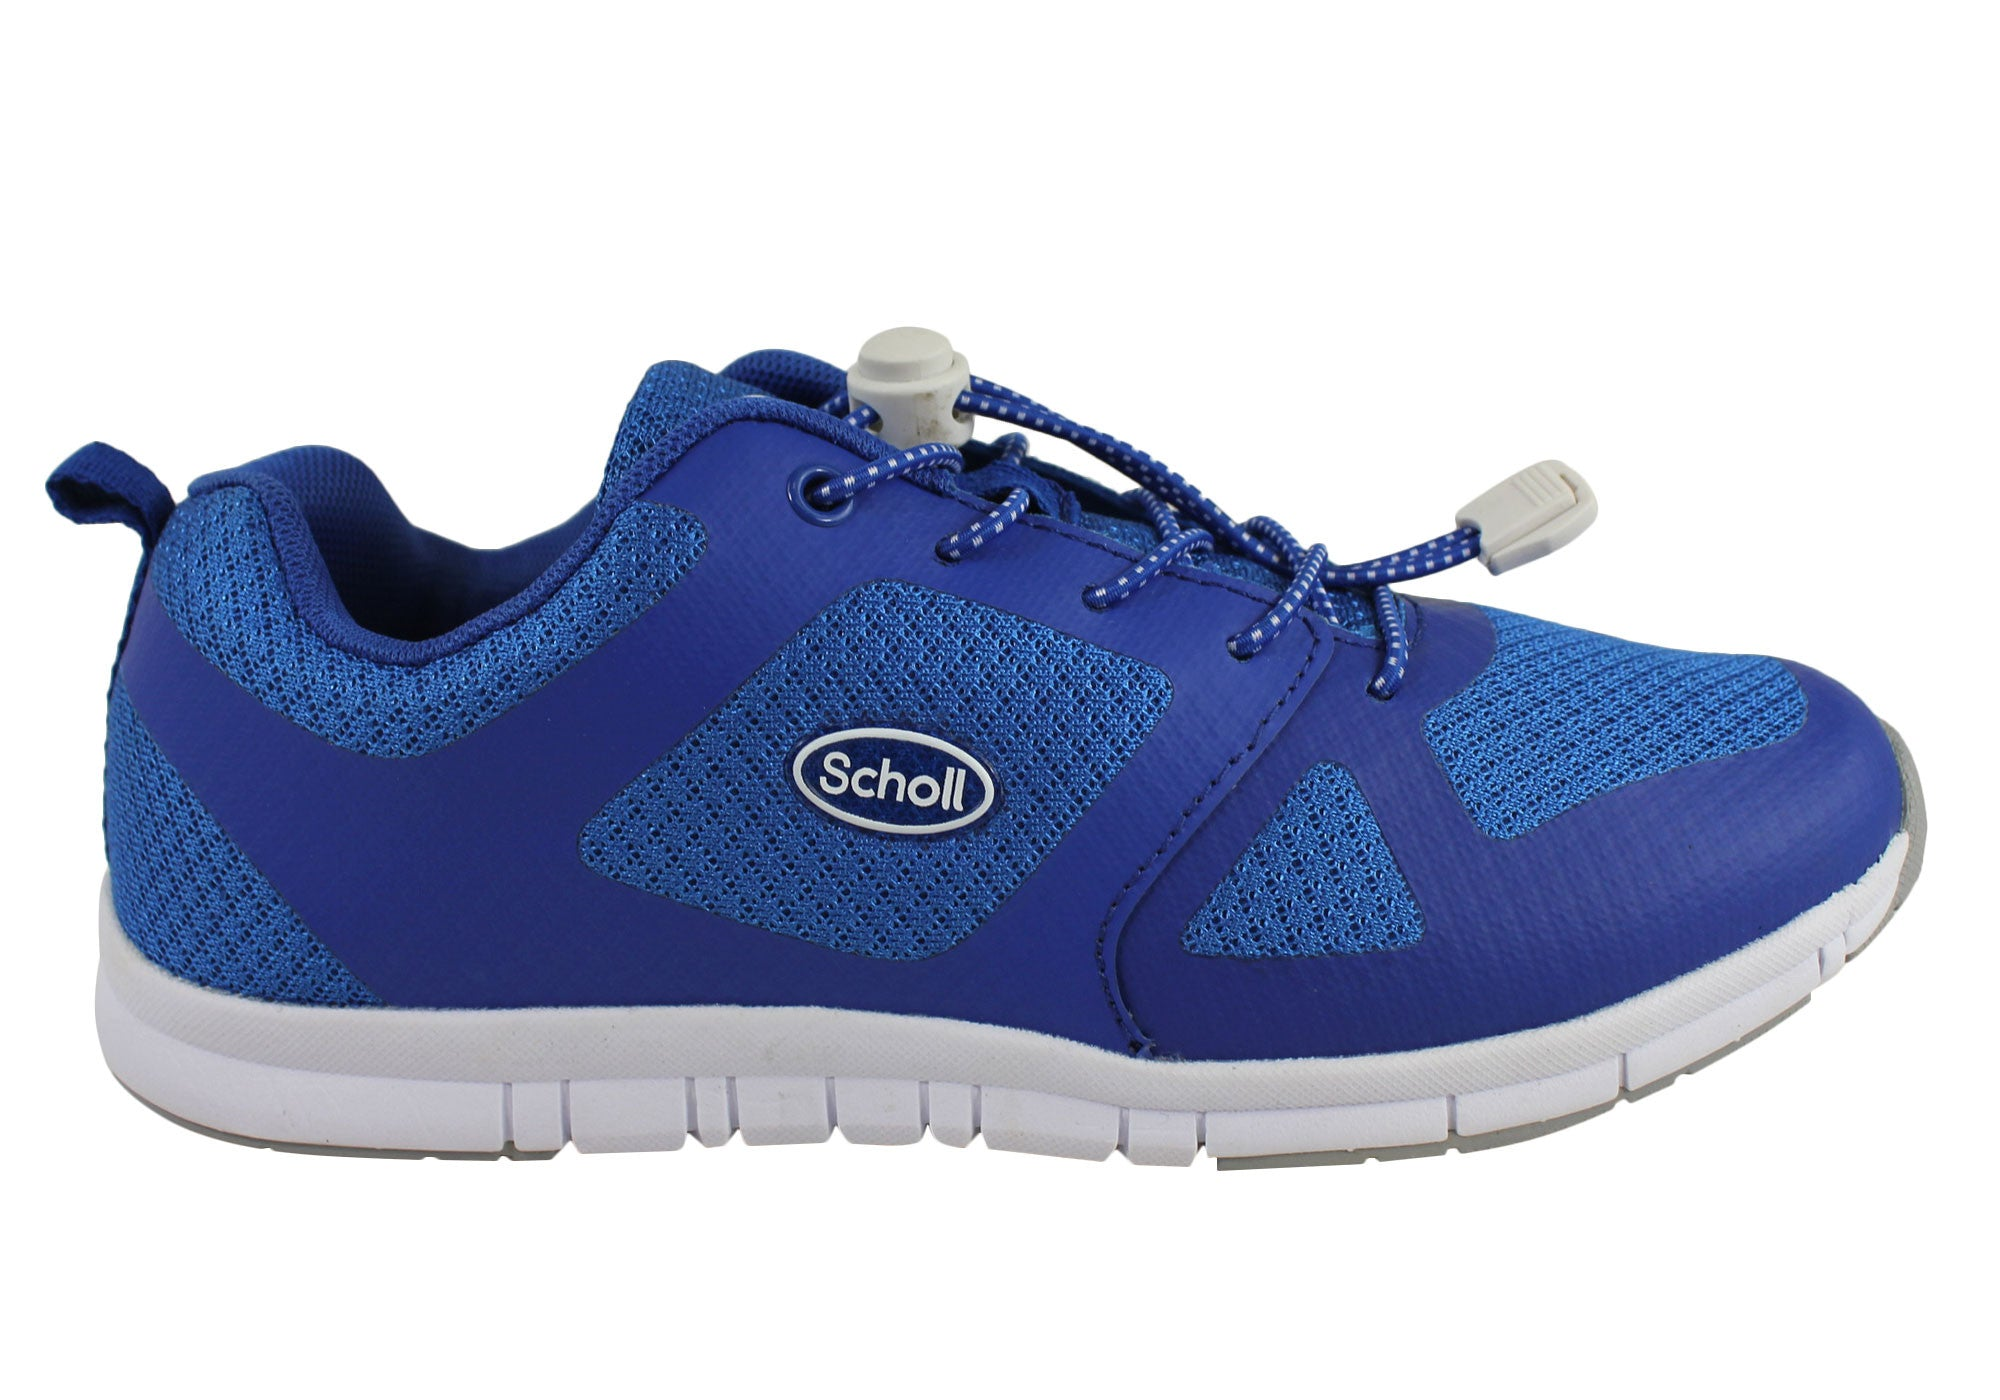 Scholl Orthaheel Flame Womens Comfortable Casual Active Shoes | Brand House  Direct